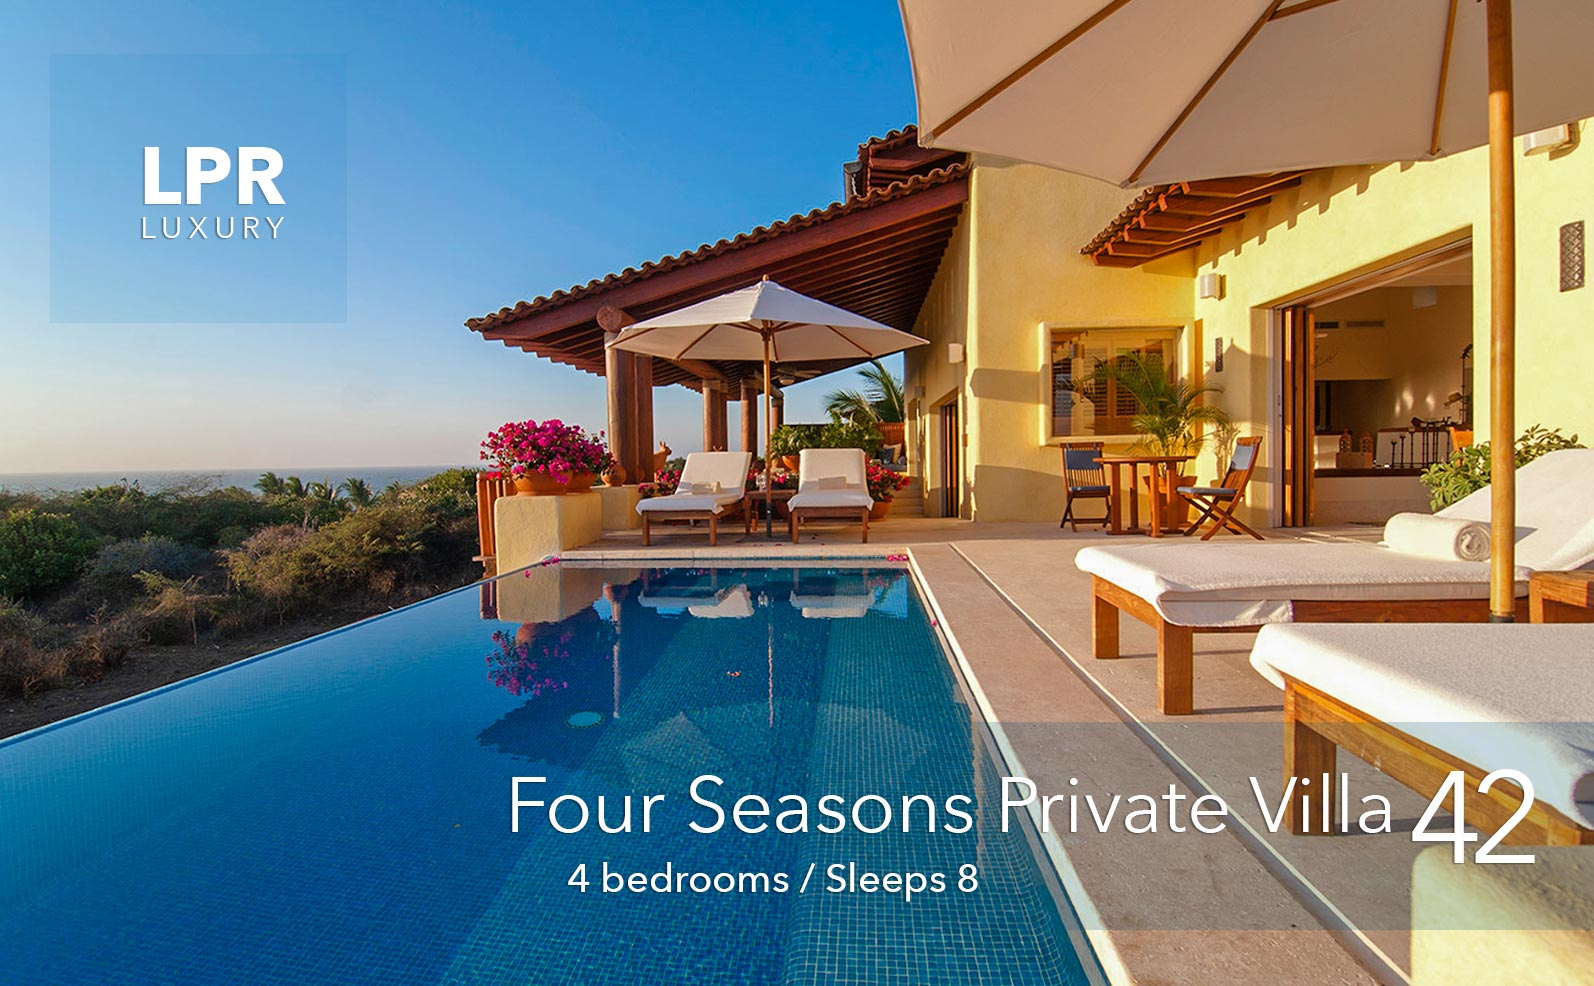 Four Seasons Private Villa 42 - Luxury Punta Mita real estate and vacation rentals - Mexico